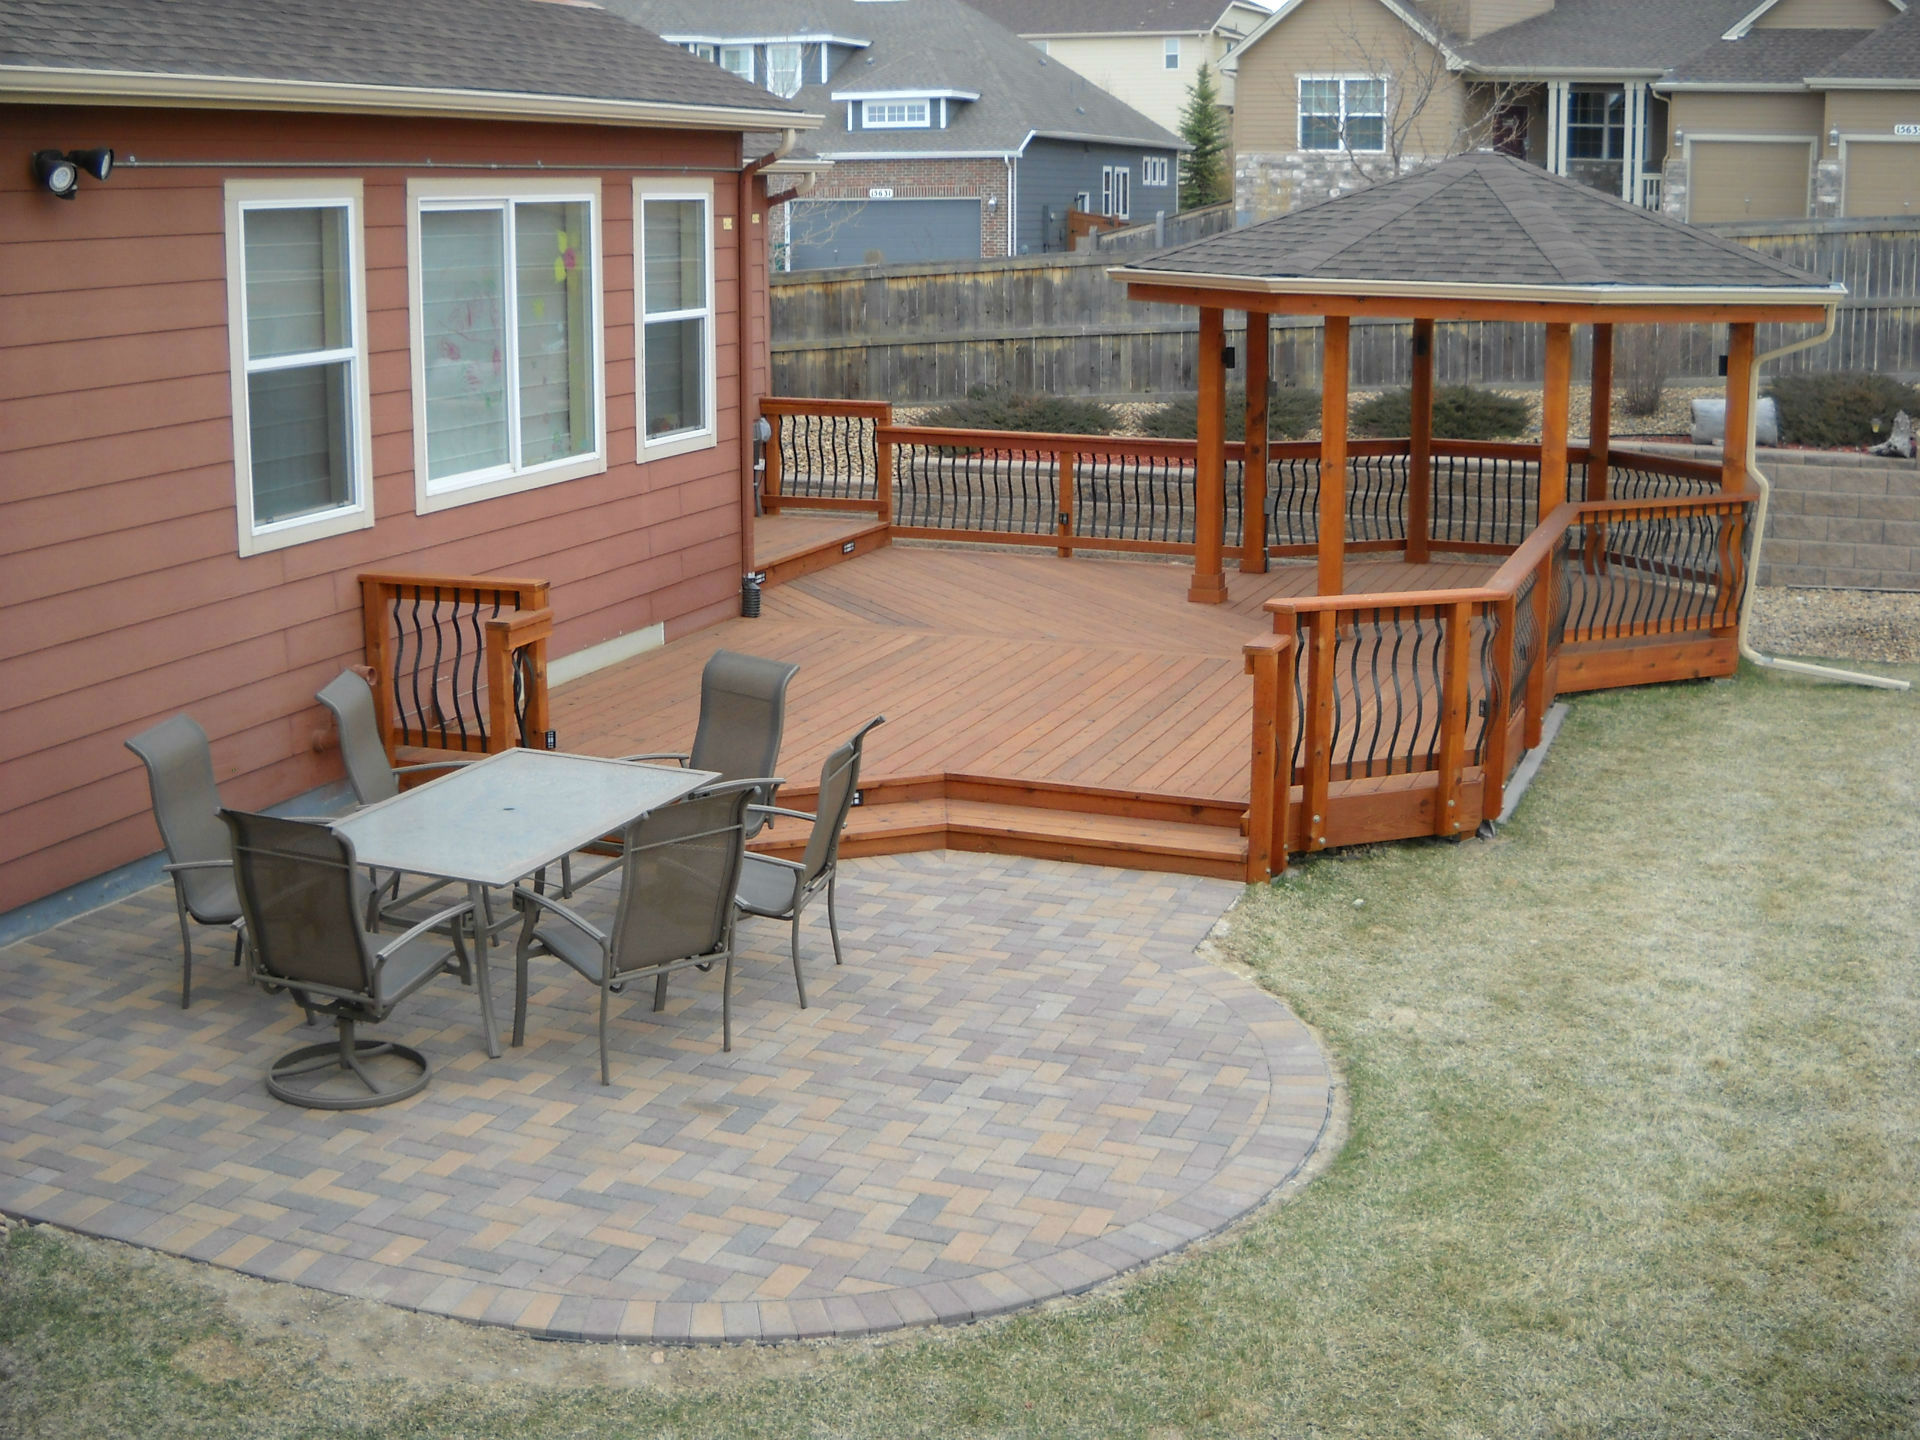 Deck & Patio Combinations - DeckTec Outdoor Designs on Patio With Deck Ideas id=83781